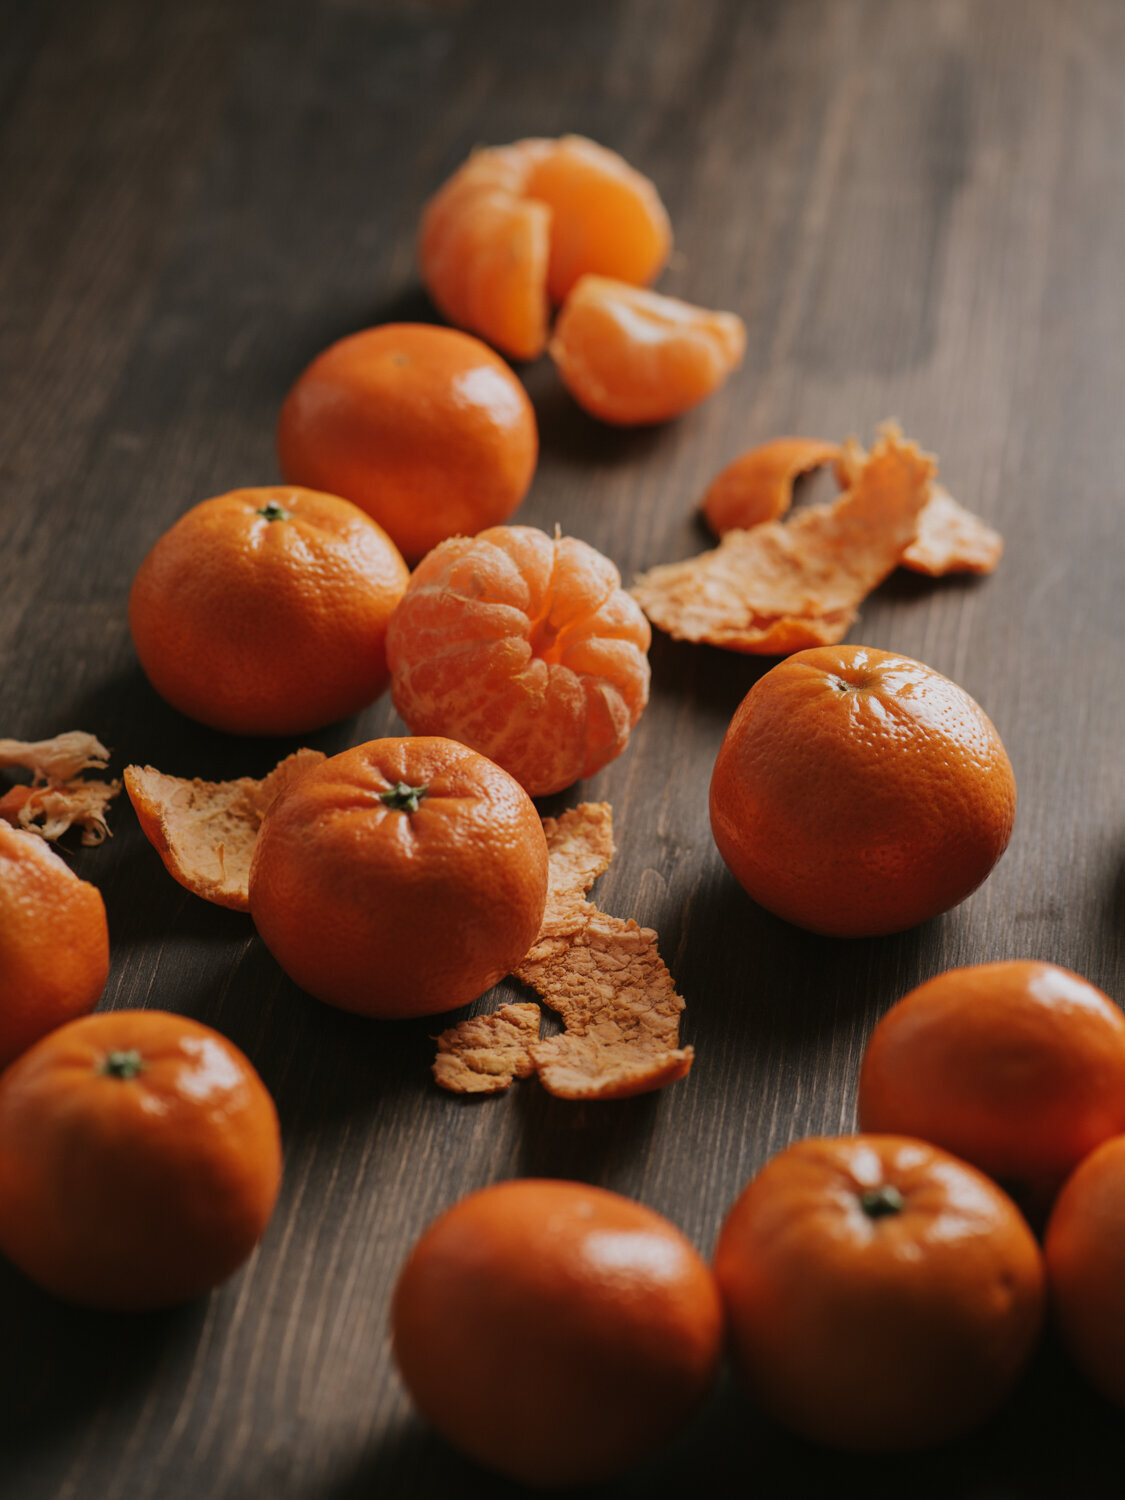 mandarines on wood backdrop